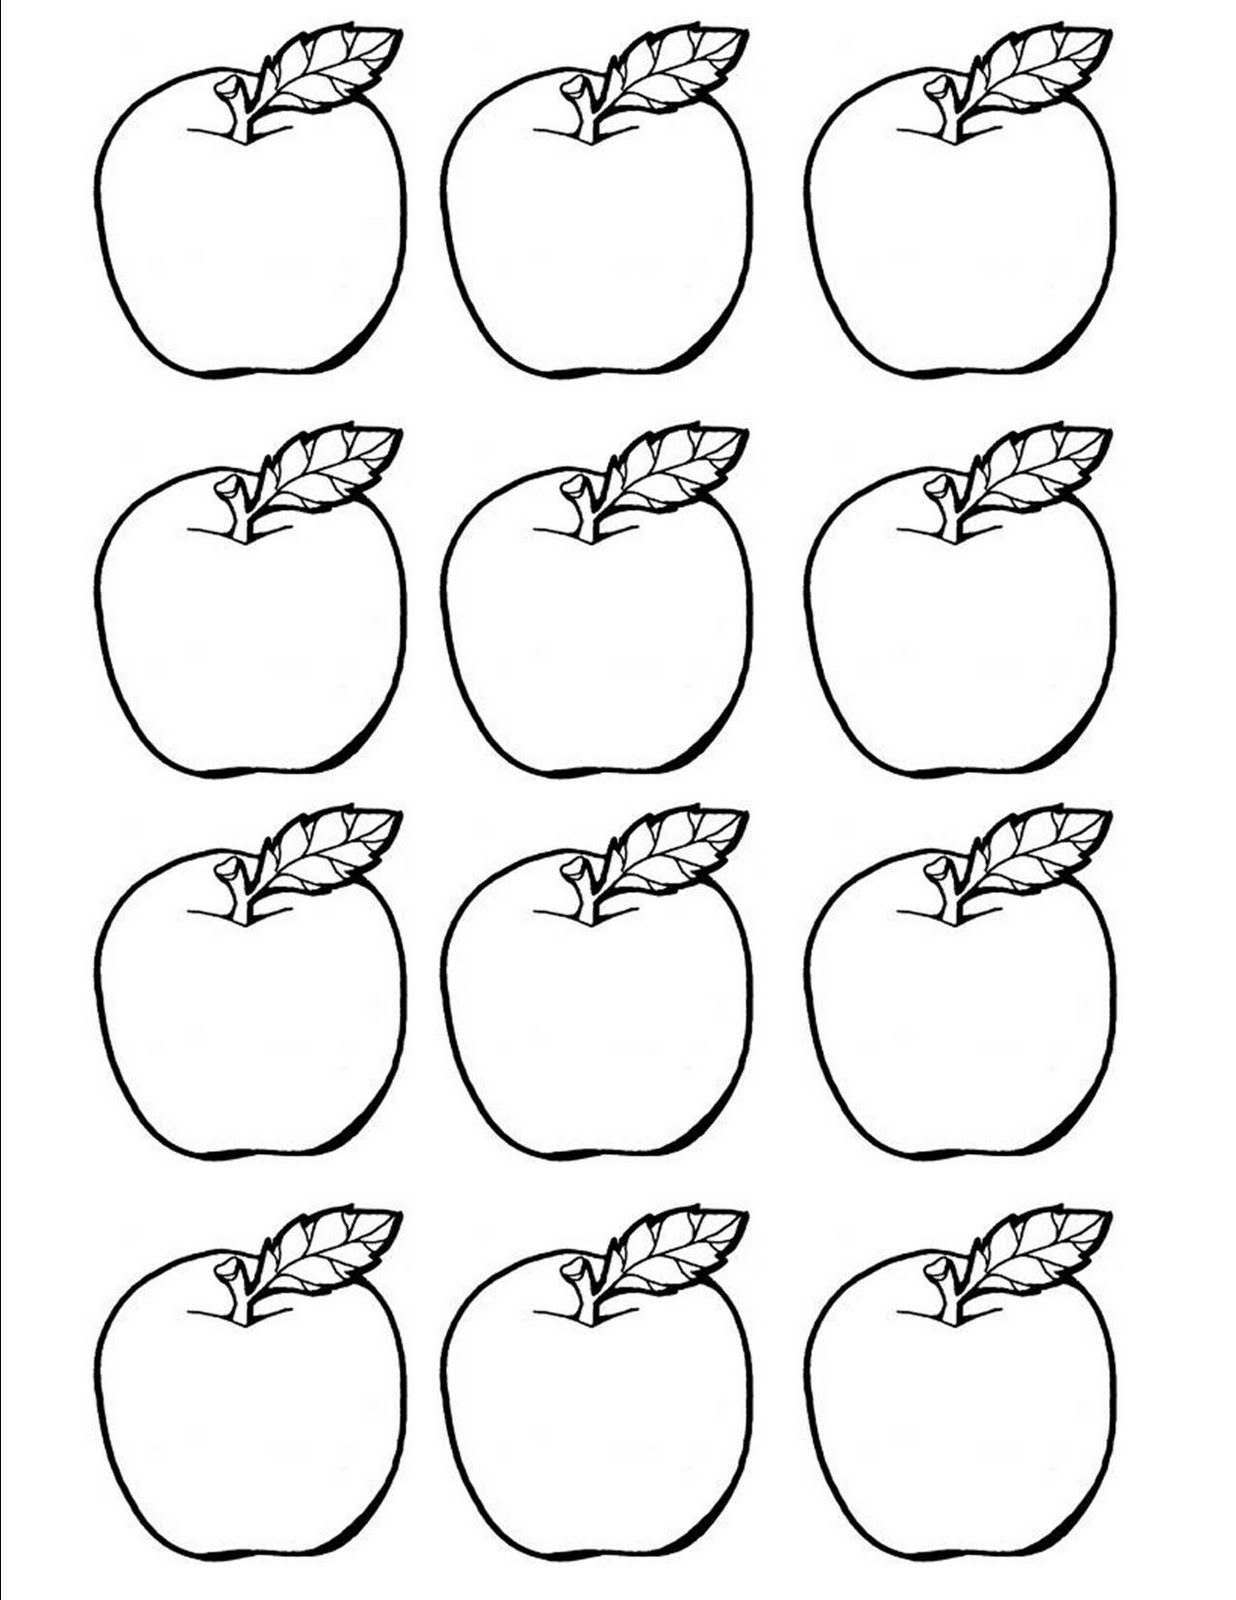 apples drawing at getdrawings com free for personal use free clipart of apple pie free clipart of apple pencil